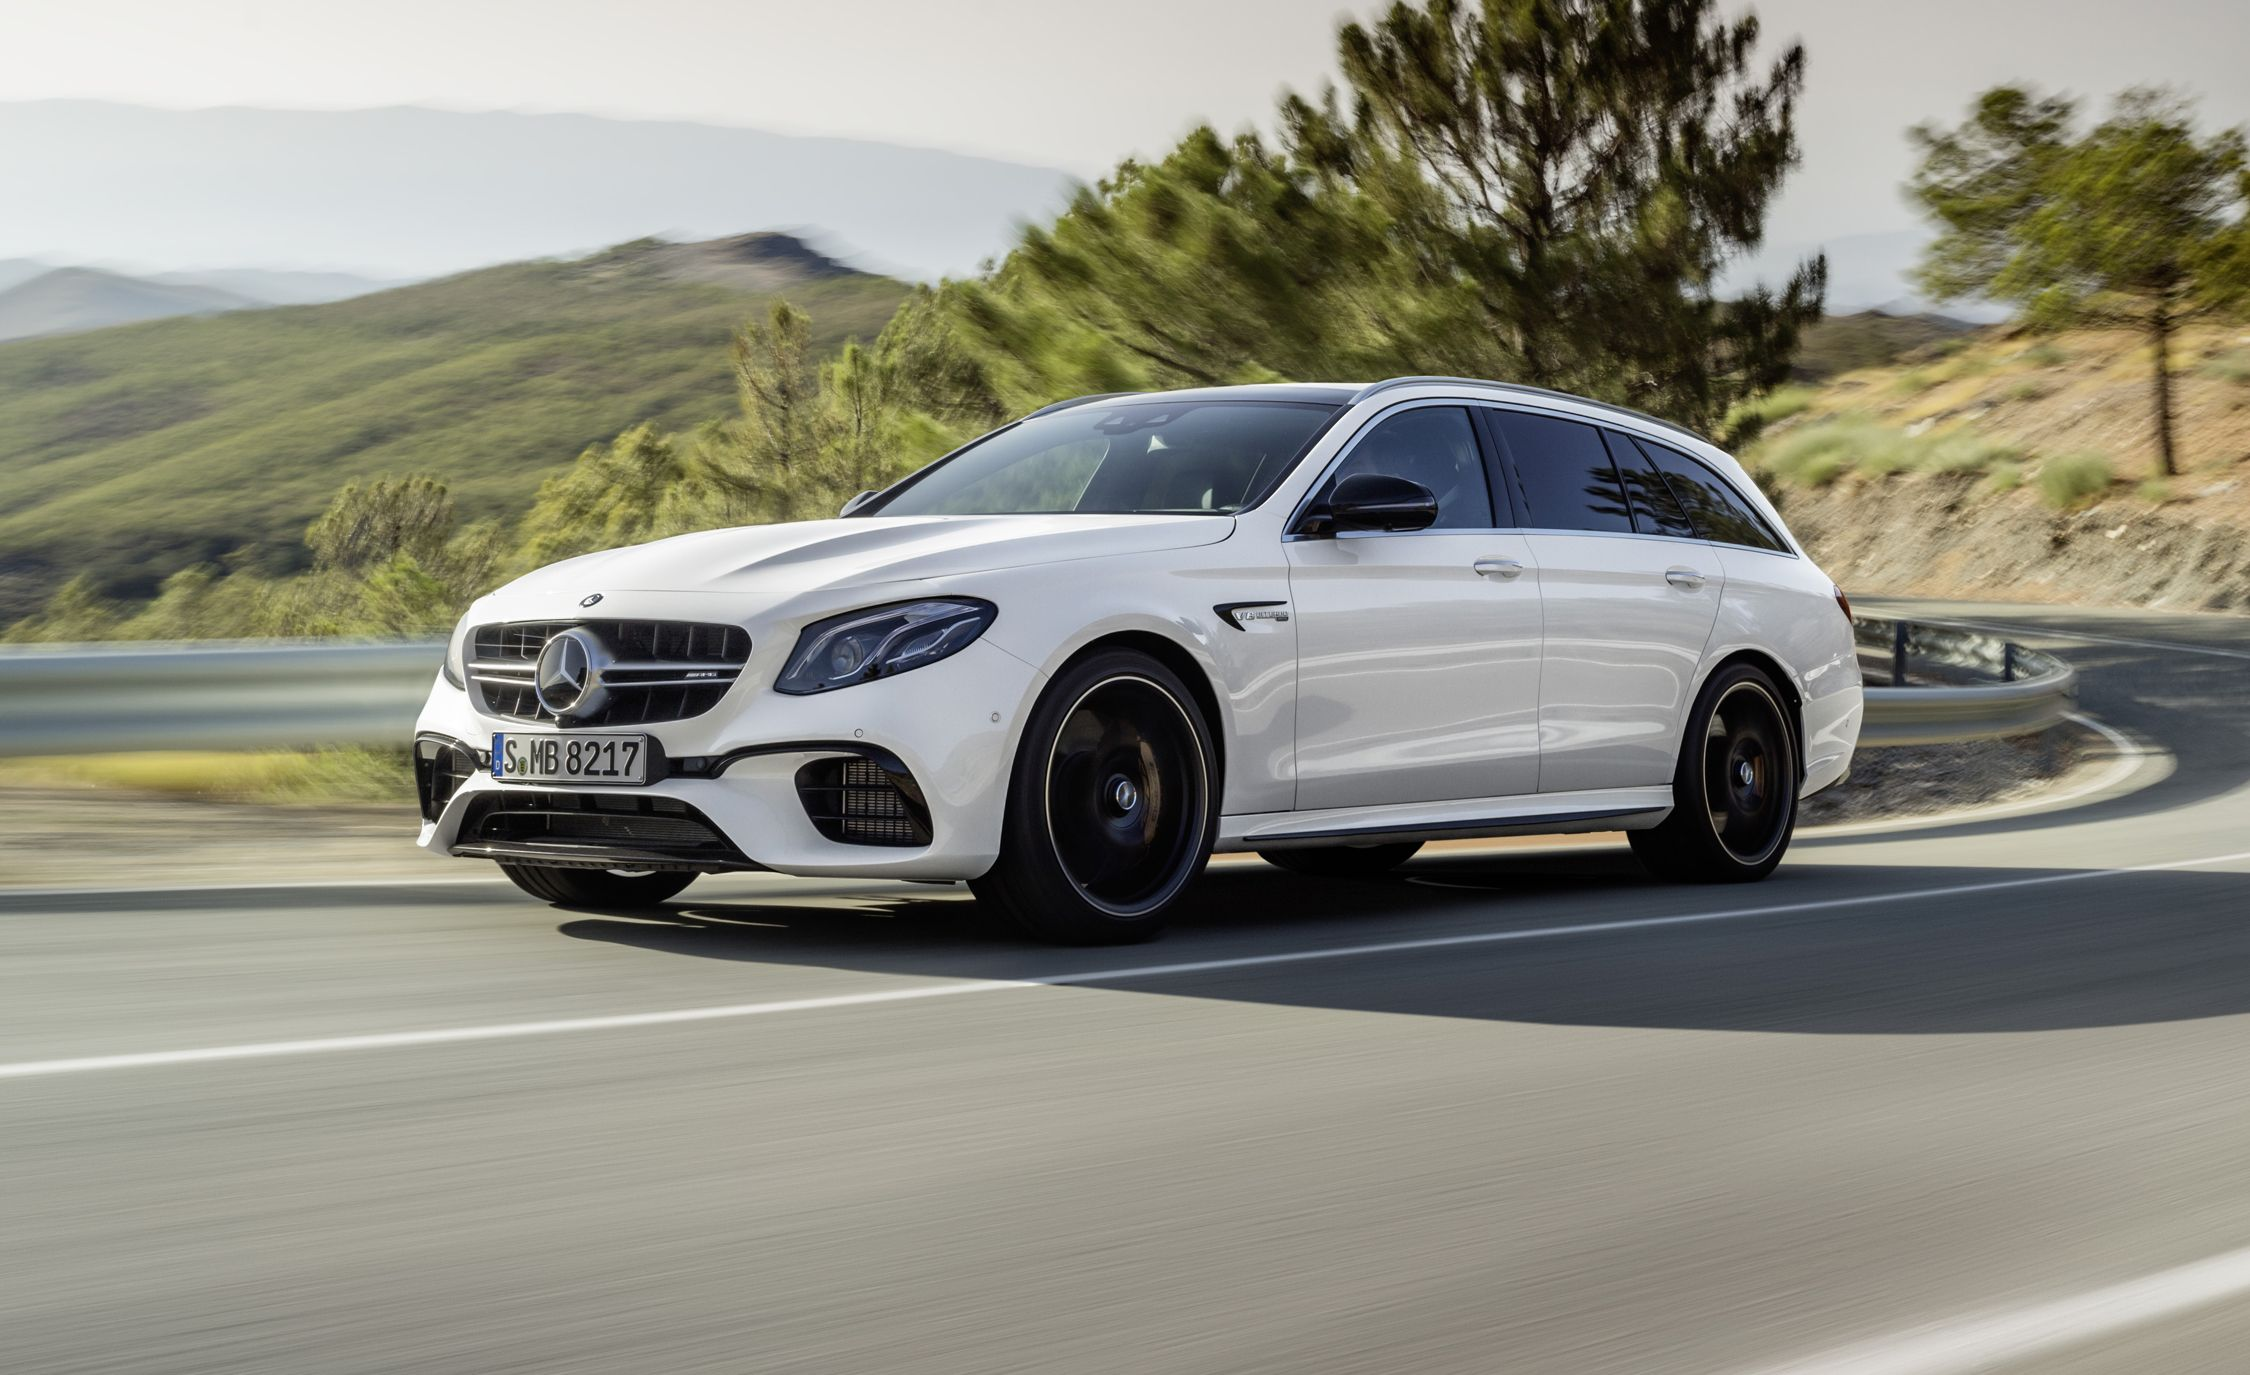 2018 Mercedes Amg E63 S Wagon Photos And Info 8211 News Car Driver